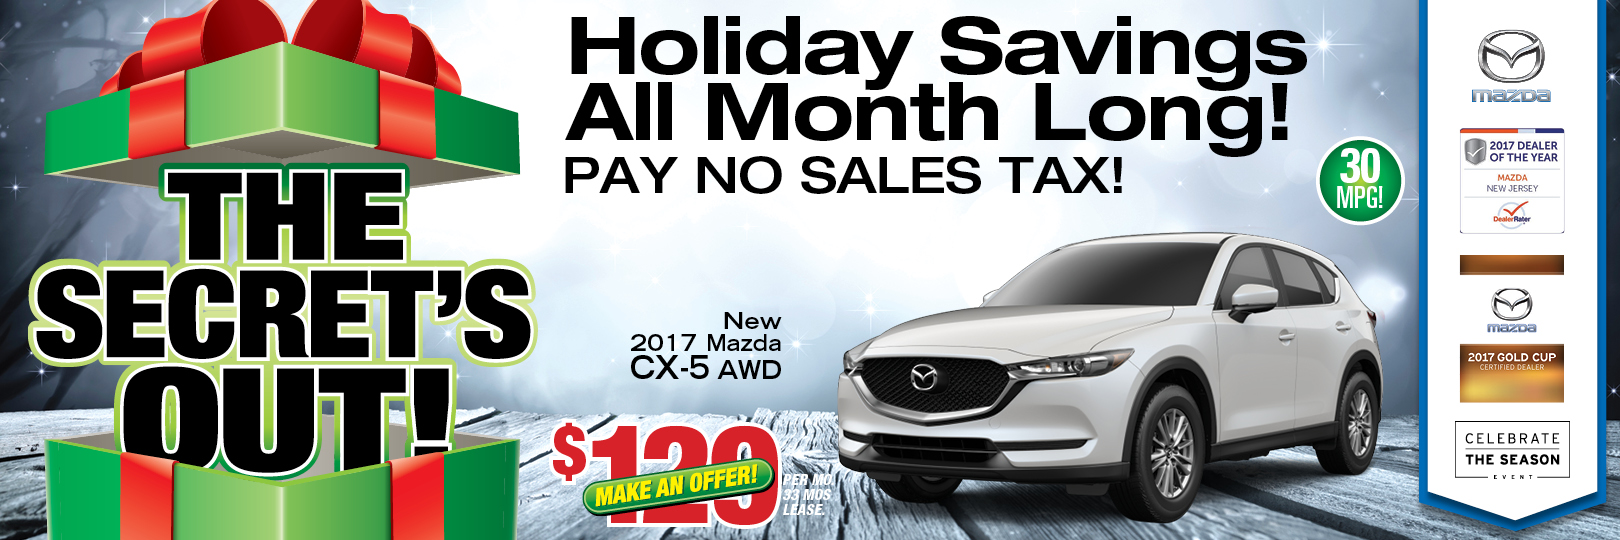 Wayne Mazda New Mazda Dealership In Wayne NJ - Mazda cx 5 lease specials